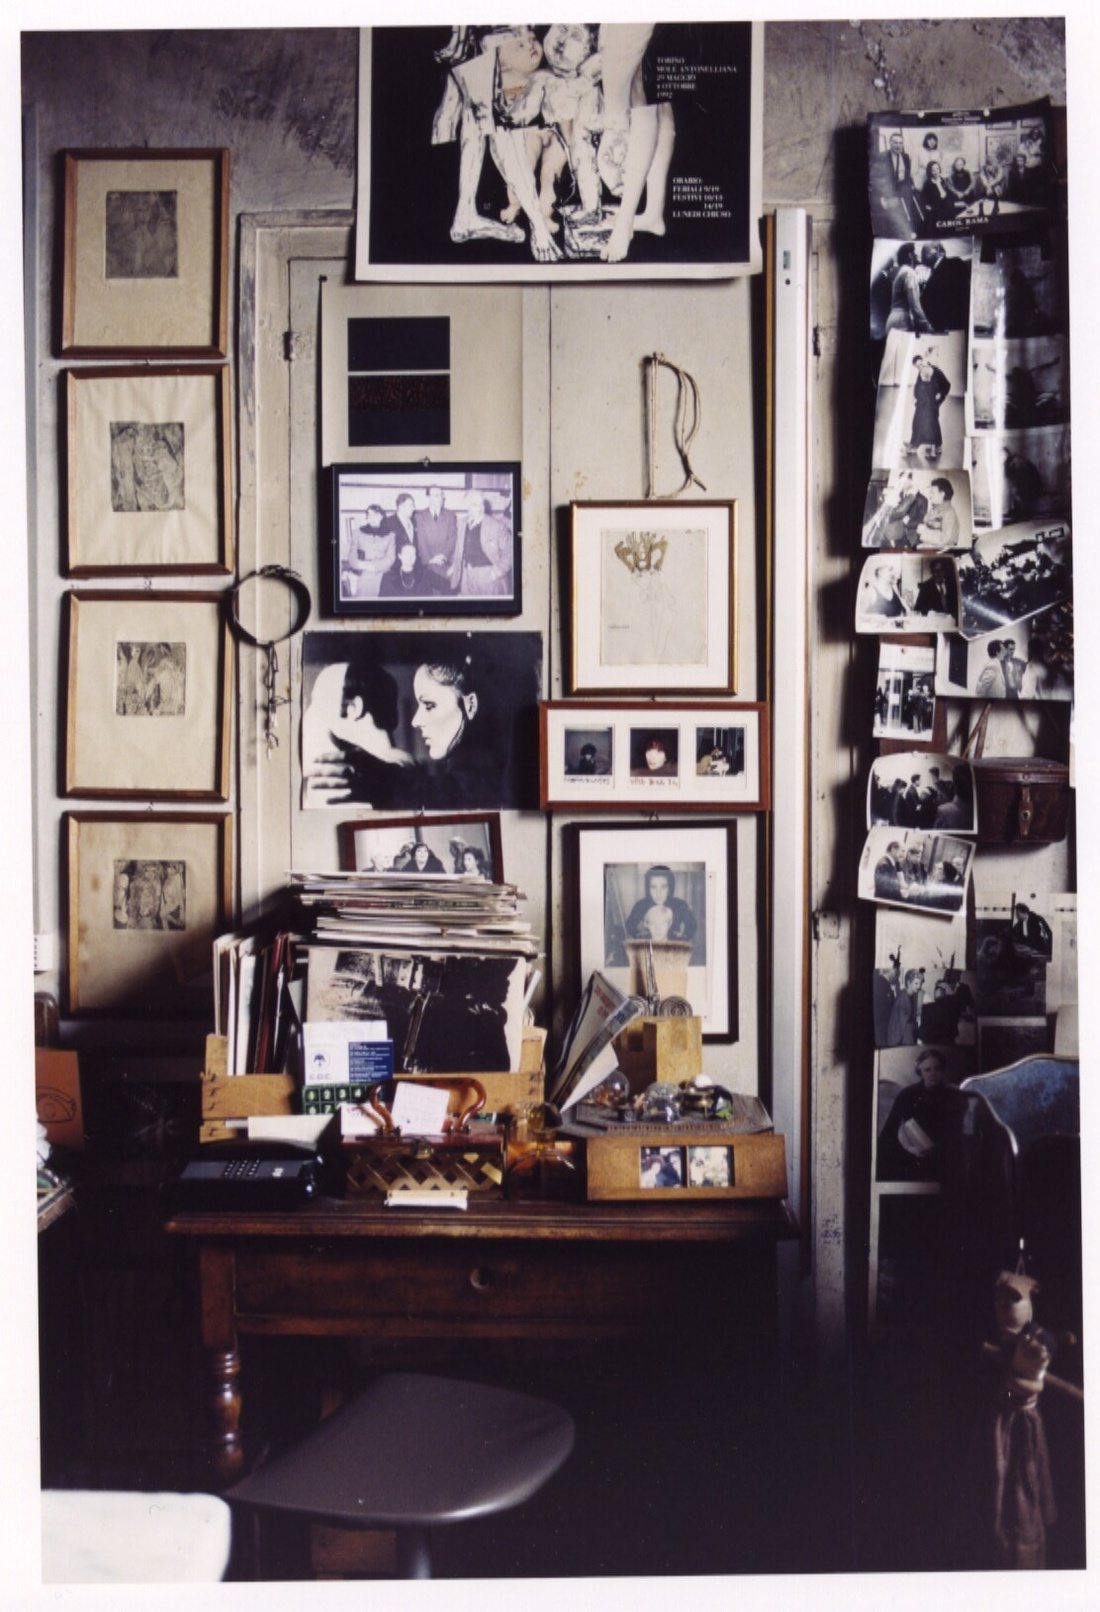 Carol Rama's home and studio in Turin, 2010, for Tate Etc. Magazine Nr 19/2010 © Lena Amuat. Courtesy of New Museum.